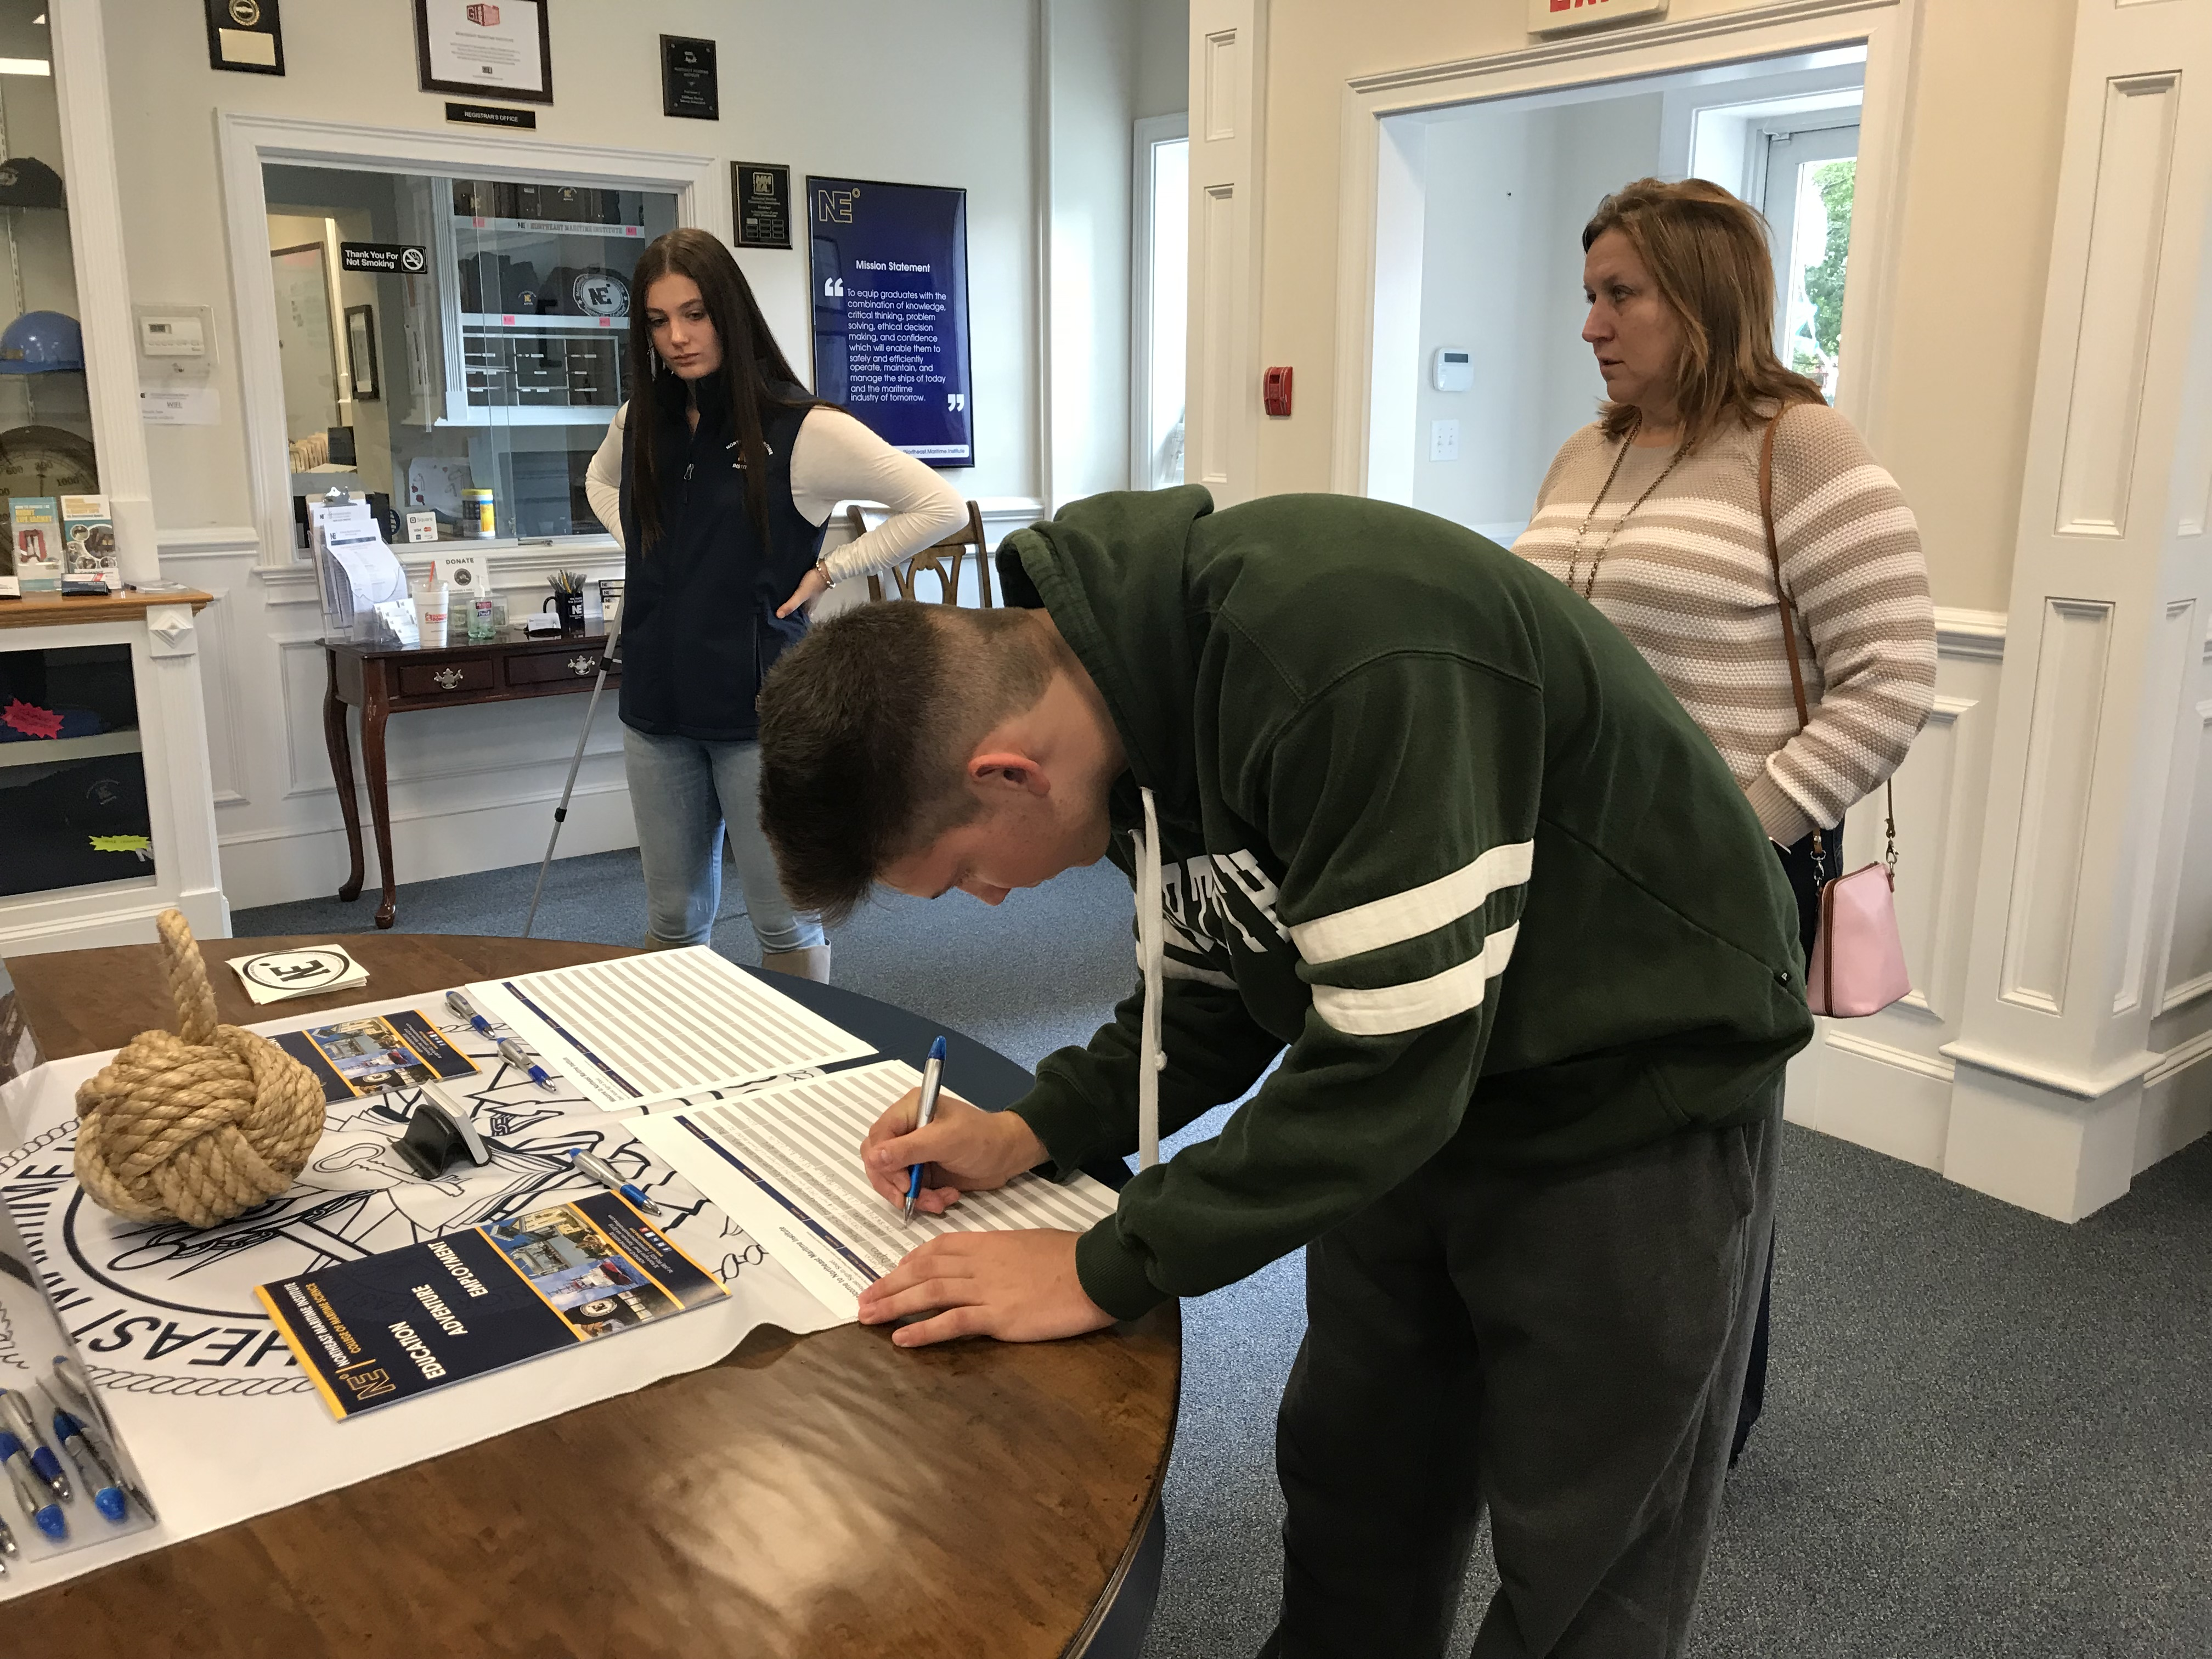 Future Mariner Signing up! Northeast Maritime Institute | Open House